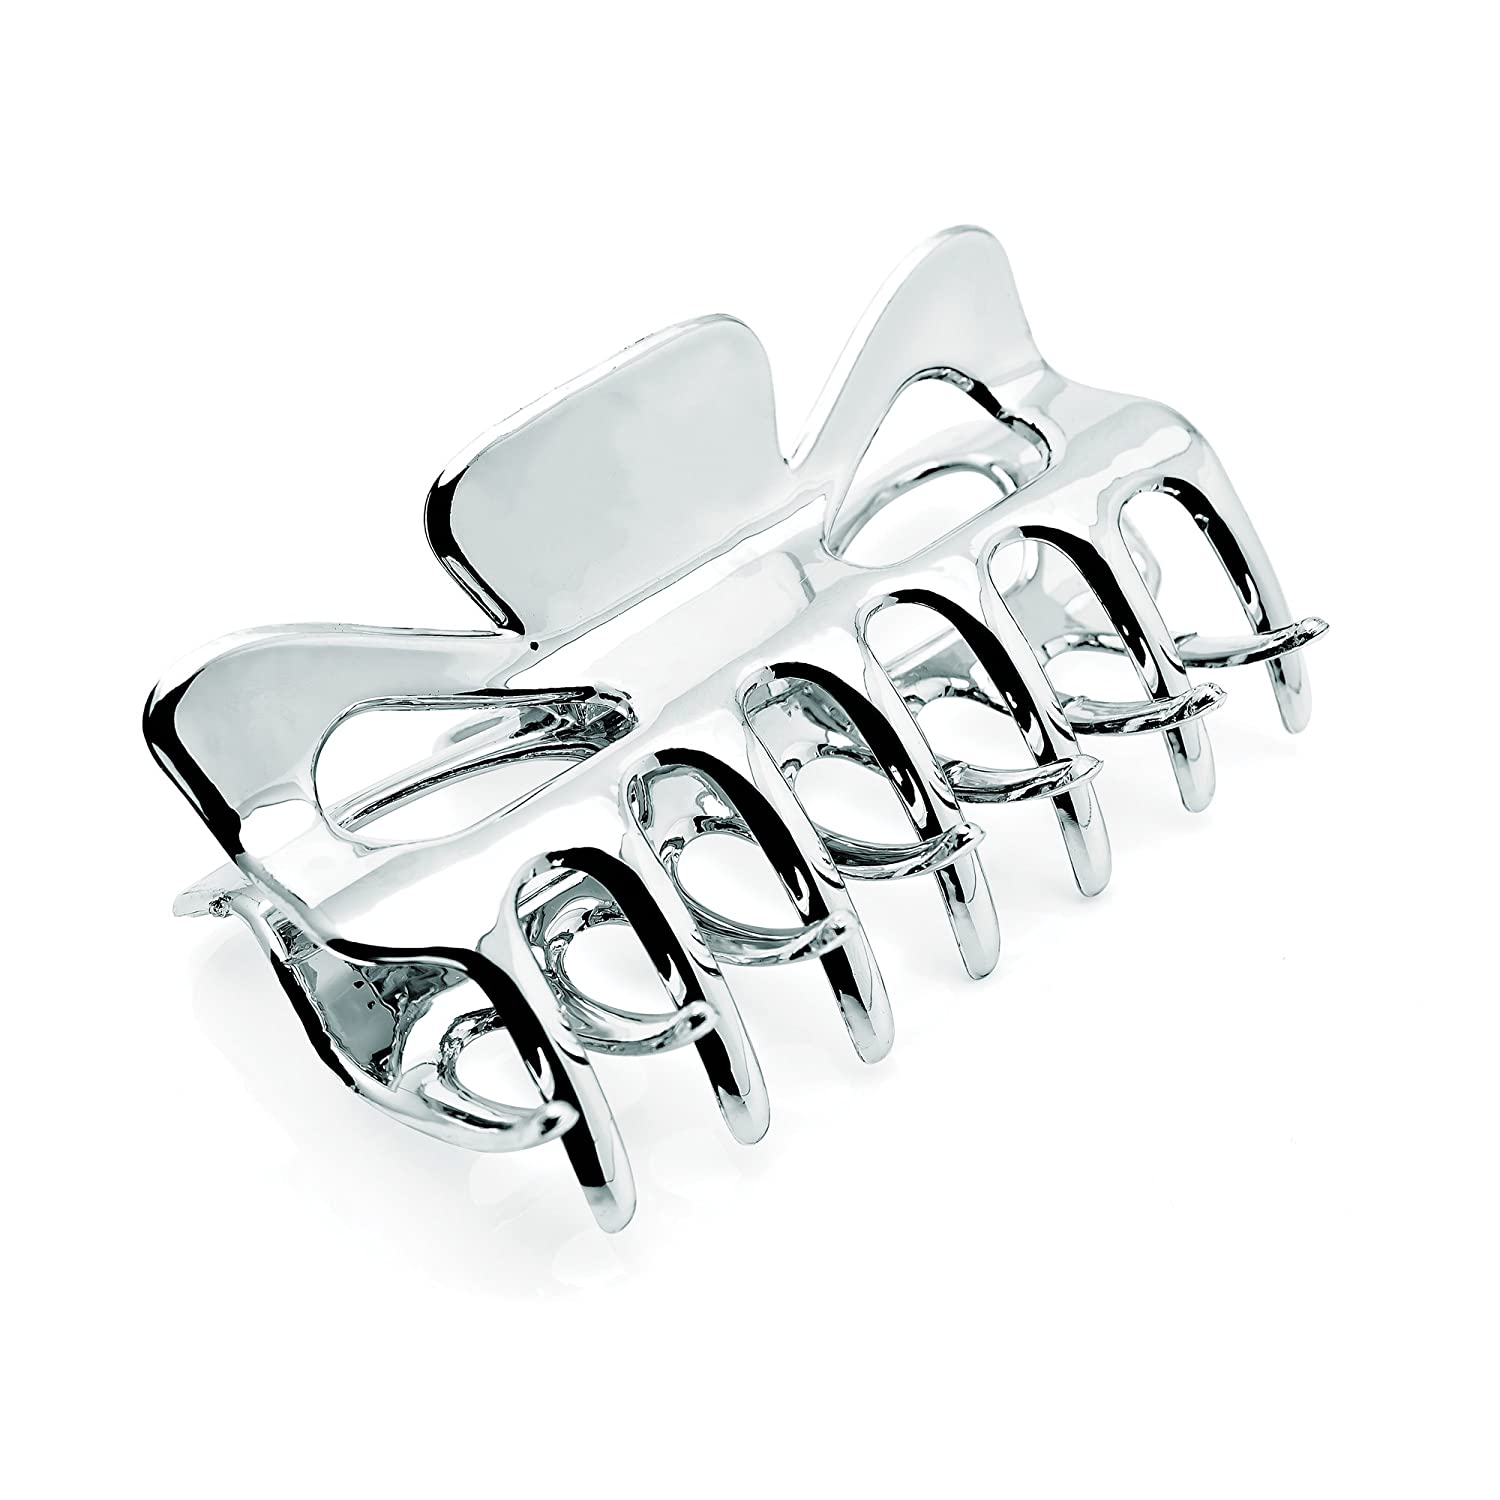 Allsorts® Silver Coloured 9cm Hair Clamps Hair Claw Allsorts Accessories